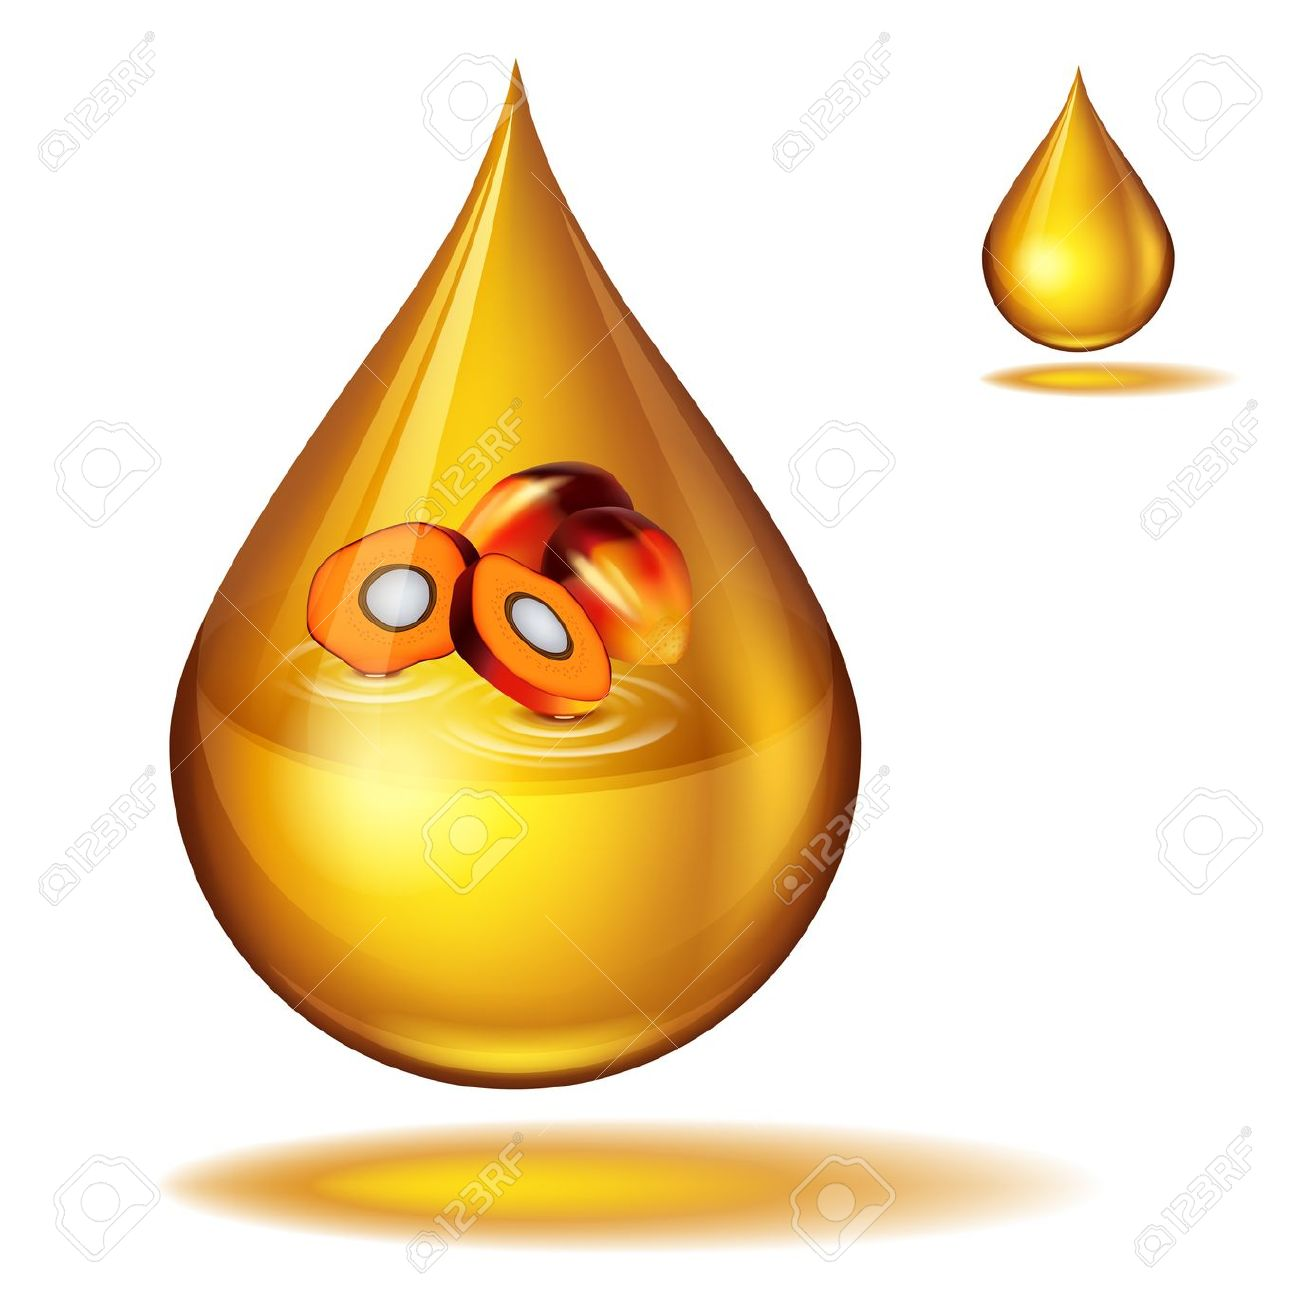 Oil drop tree clipart.